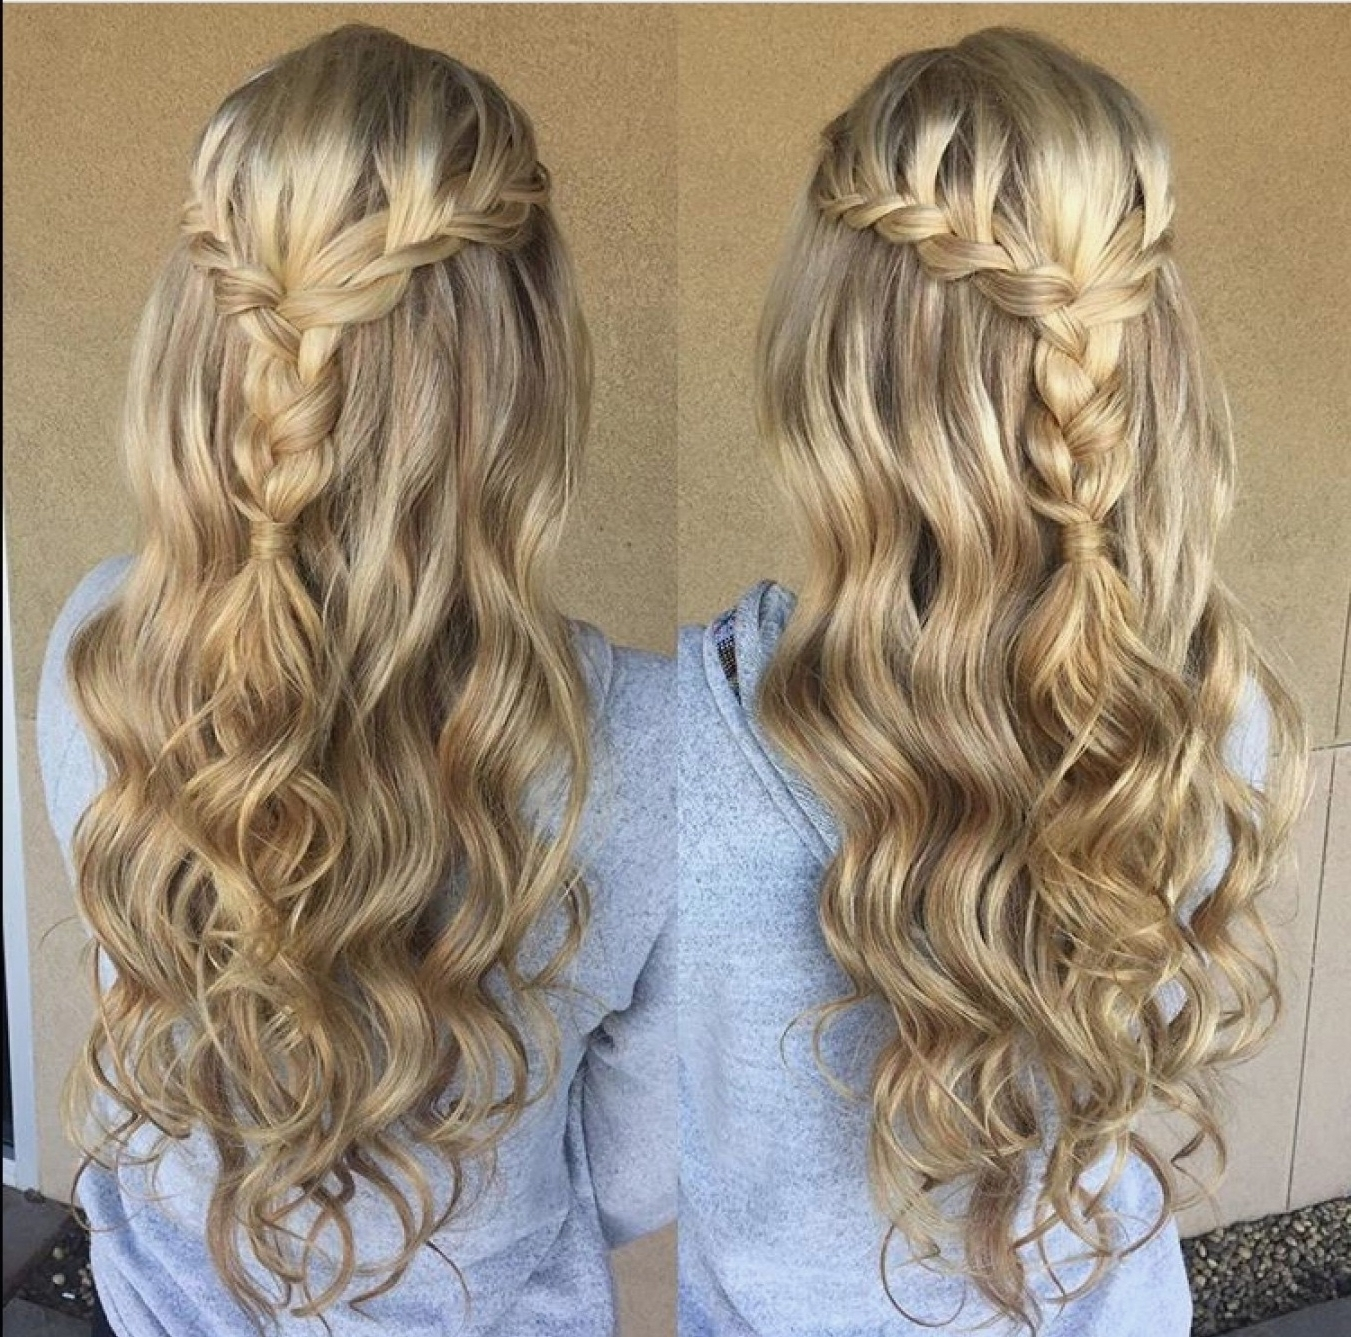 Braid Hairstyles : Cool Half Up Half Down Braided Prom Hairstyles In Pertaining To Fashionable Prom Braided Hairstyles (View 3 of 15)